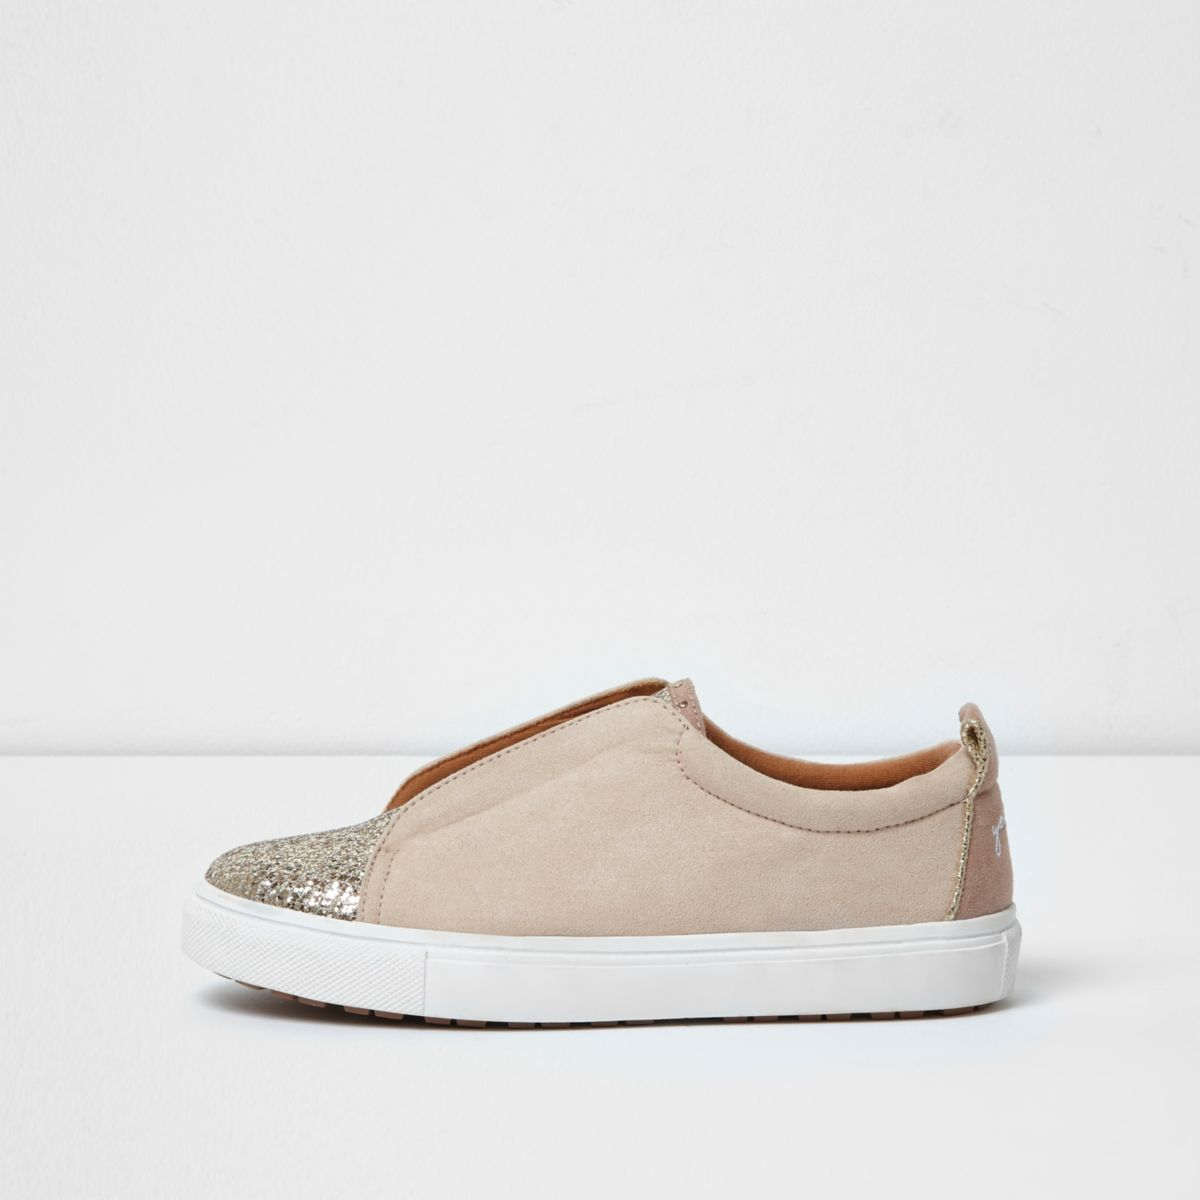 Light pink glitter slip on runner sneakers